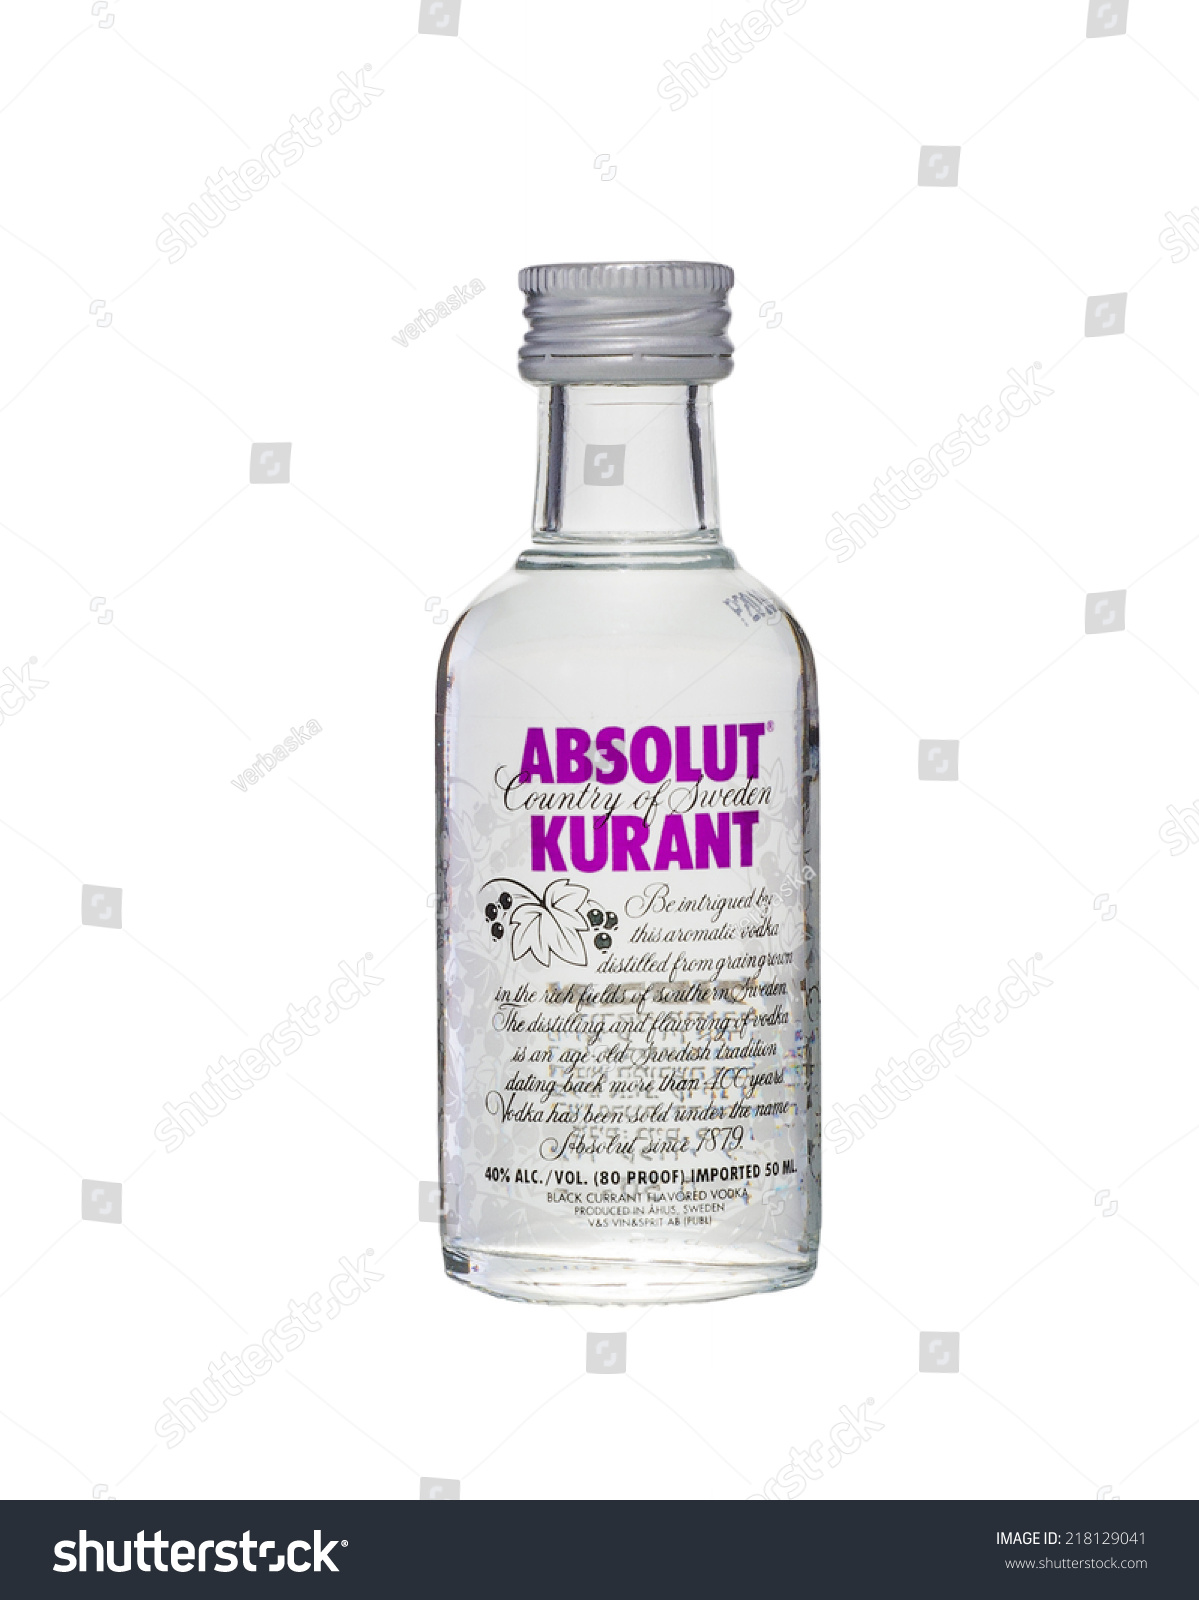 Rishon Le Zion, Israel - September 18, 2012: One miniature bottle of Absolut - Absolut Kurant Vector PNG